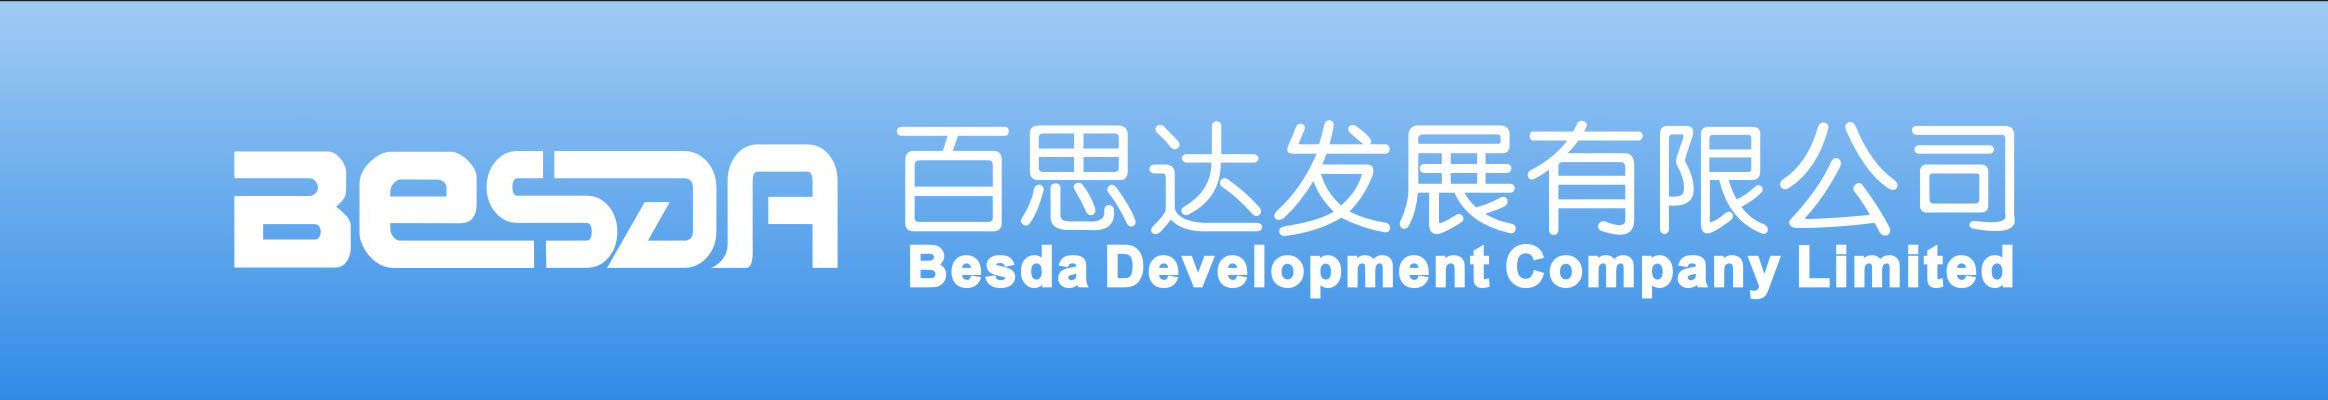 Besda Development Company Limited